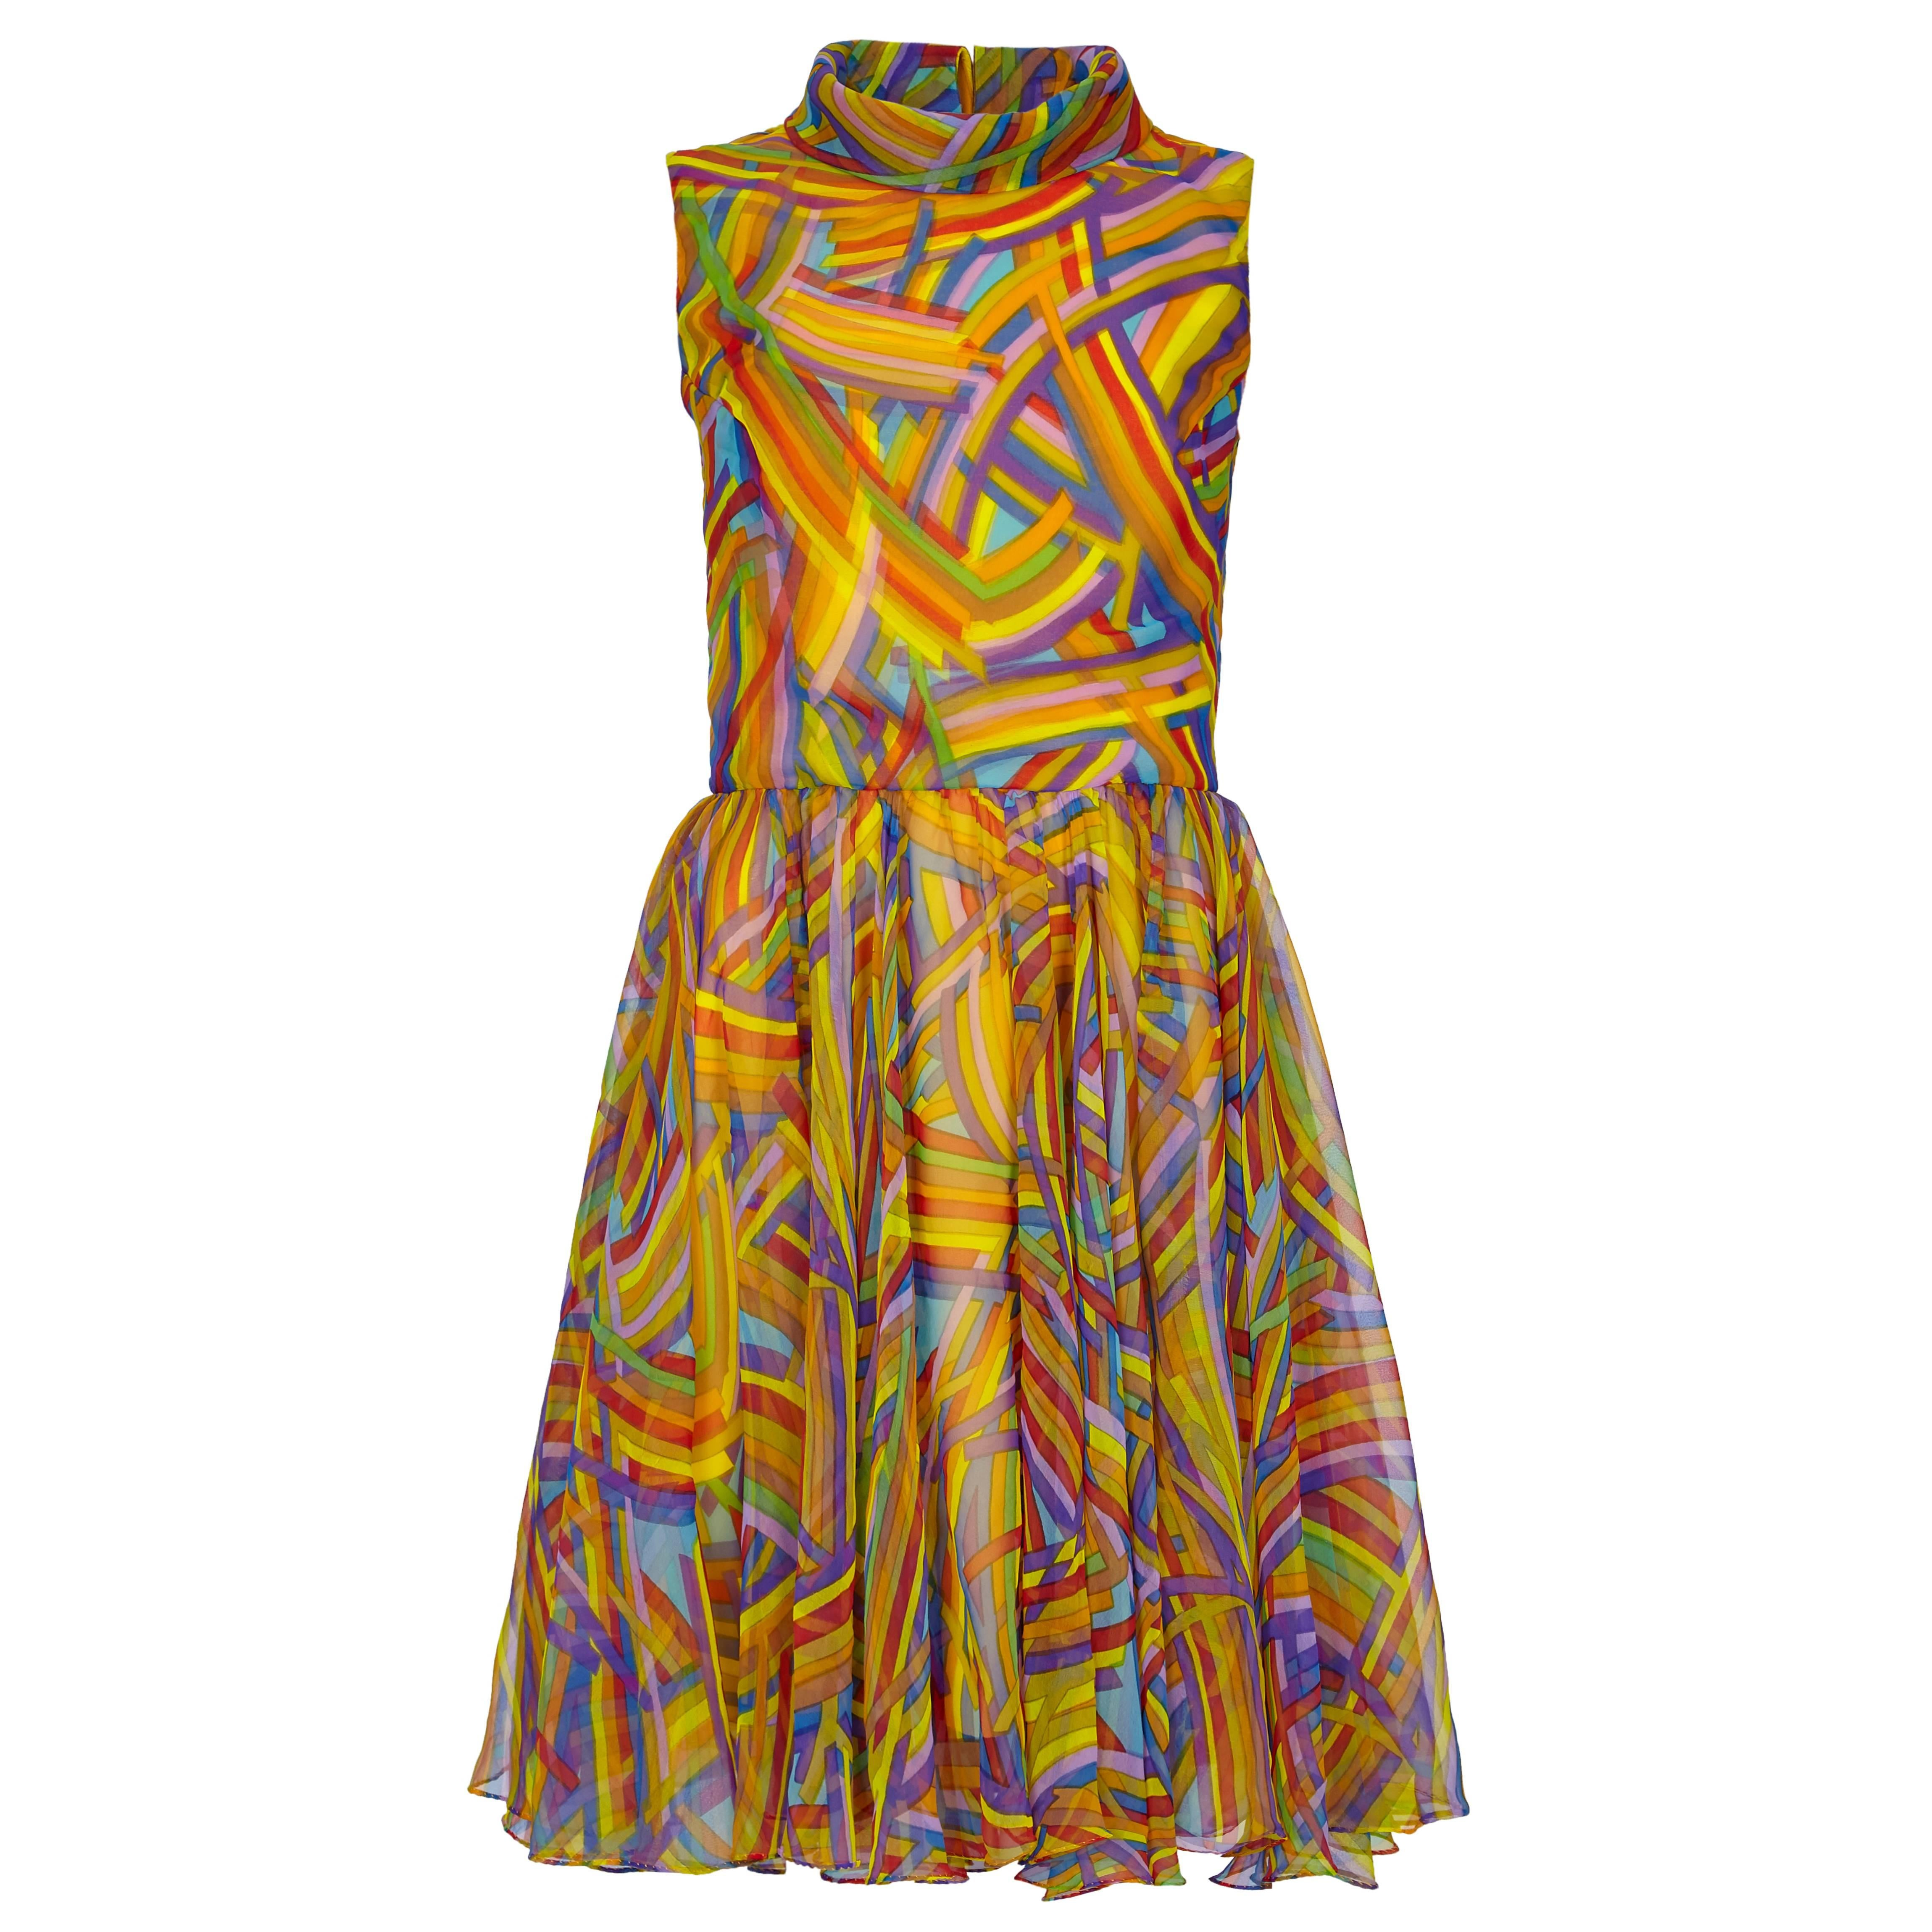 1960s Jack Bryan Multi-coloured Chiffon Dress With Roll Neck Detail